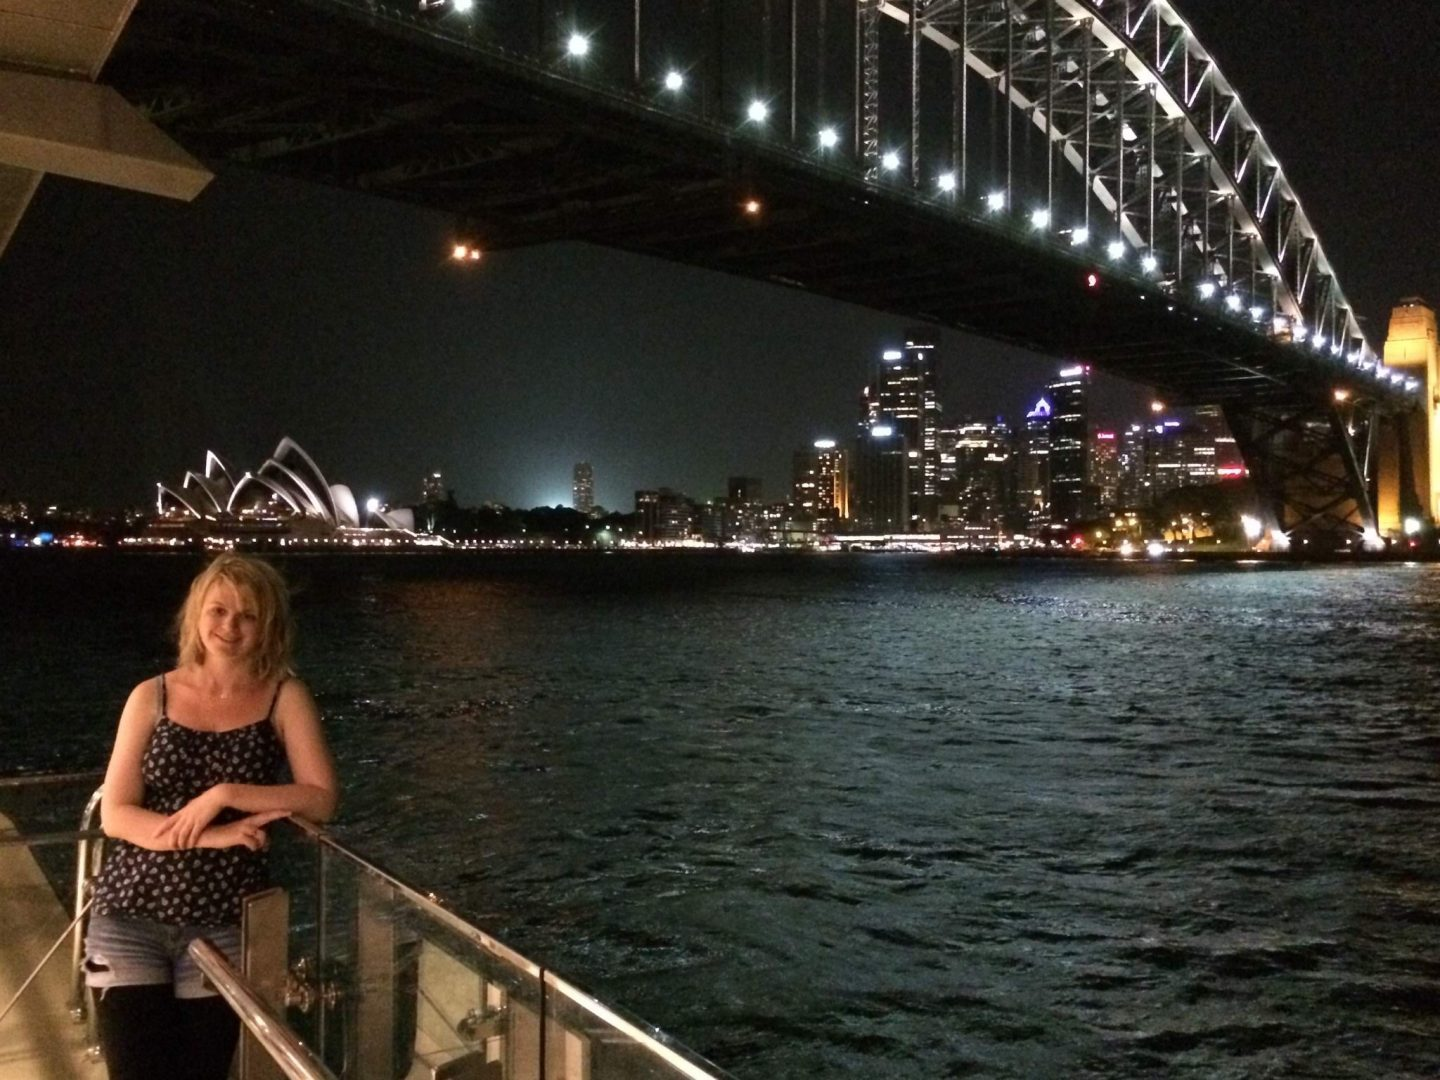 Laura at Milsons Point at night